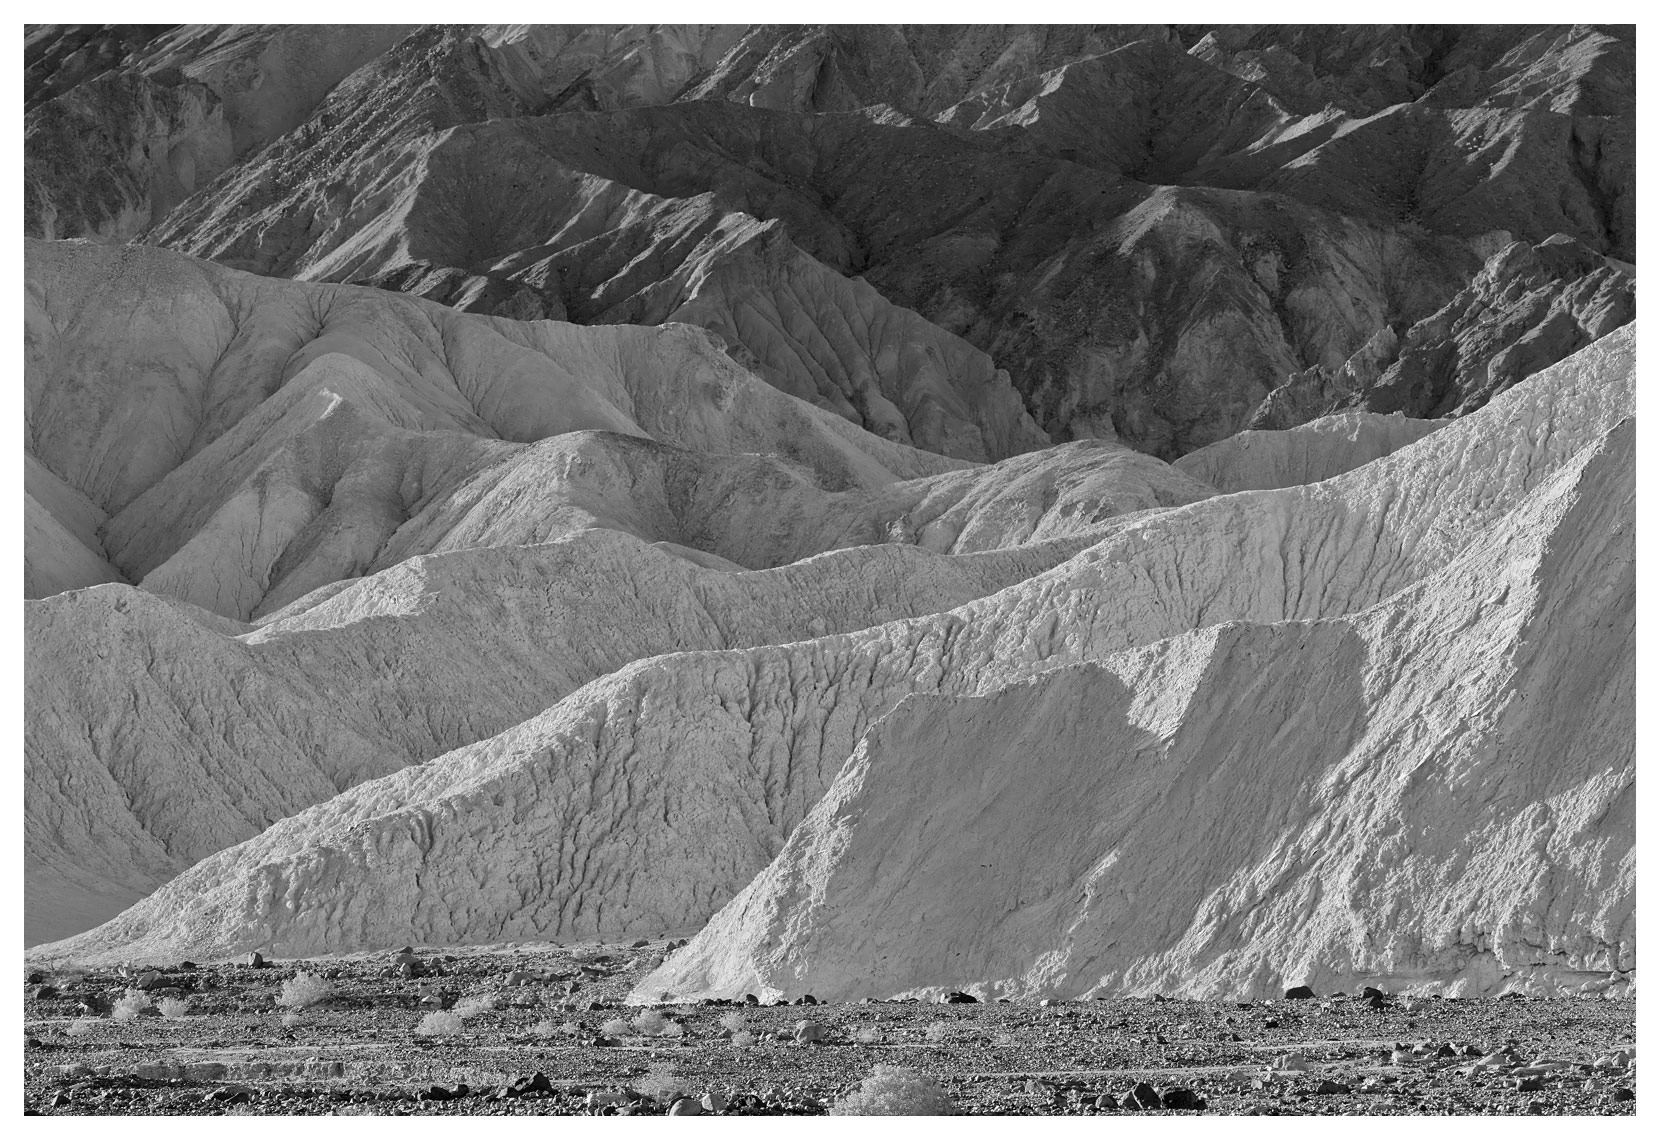 exposed-2-death-valley-national-park-california